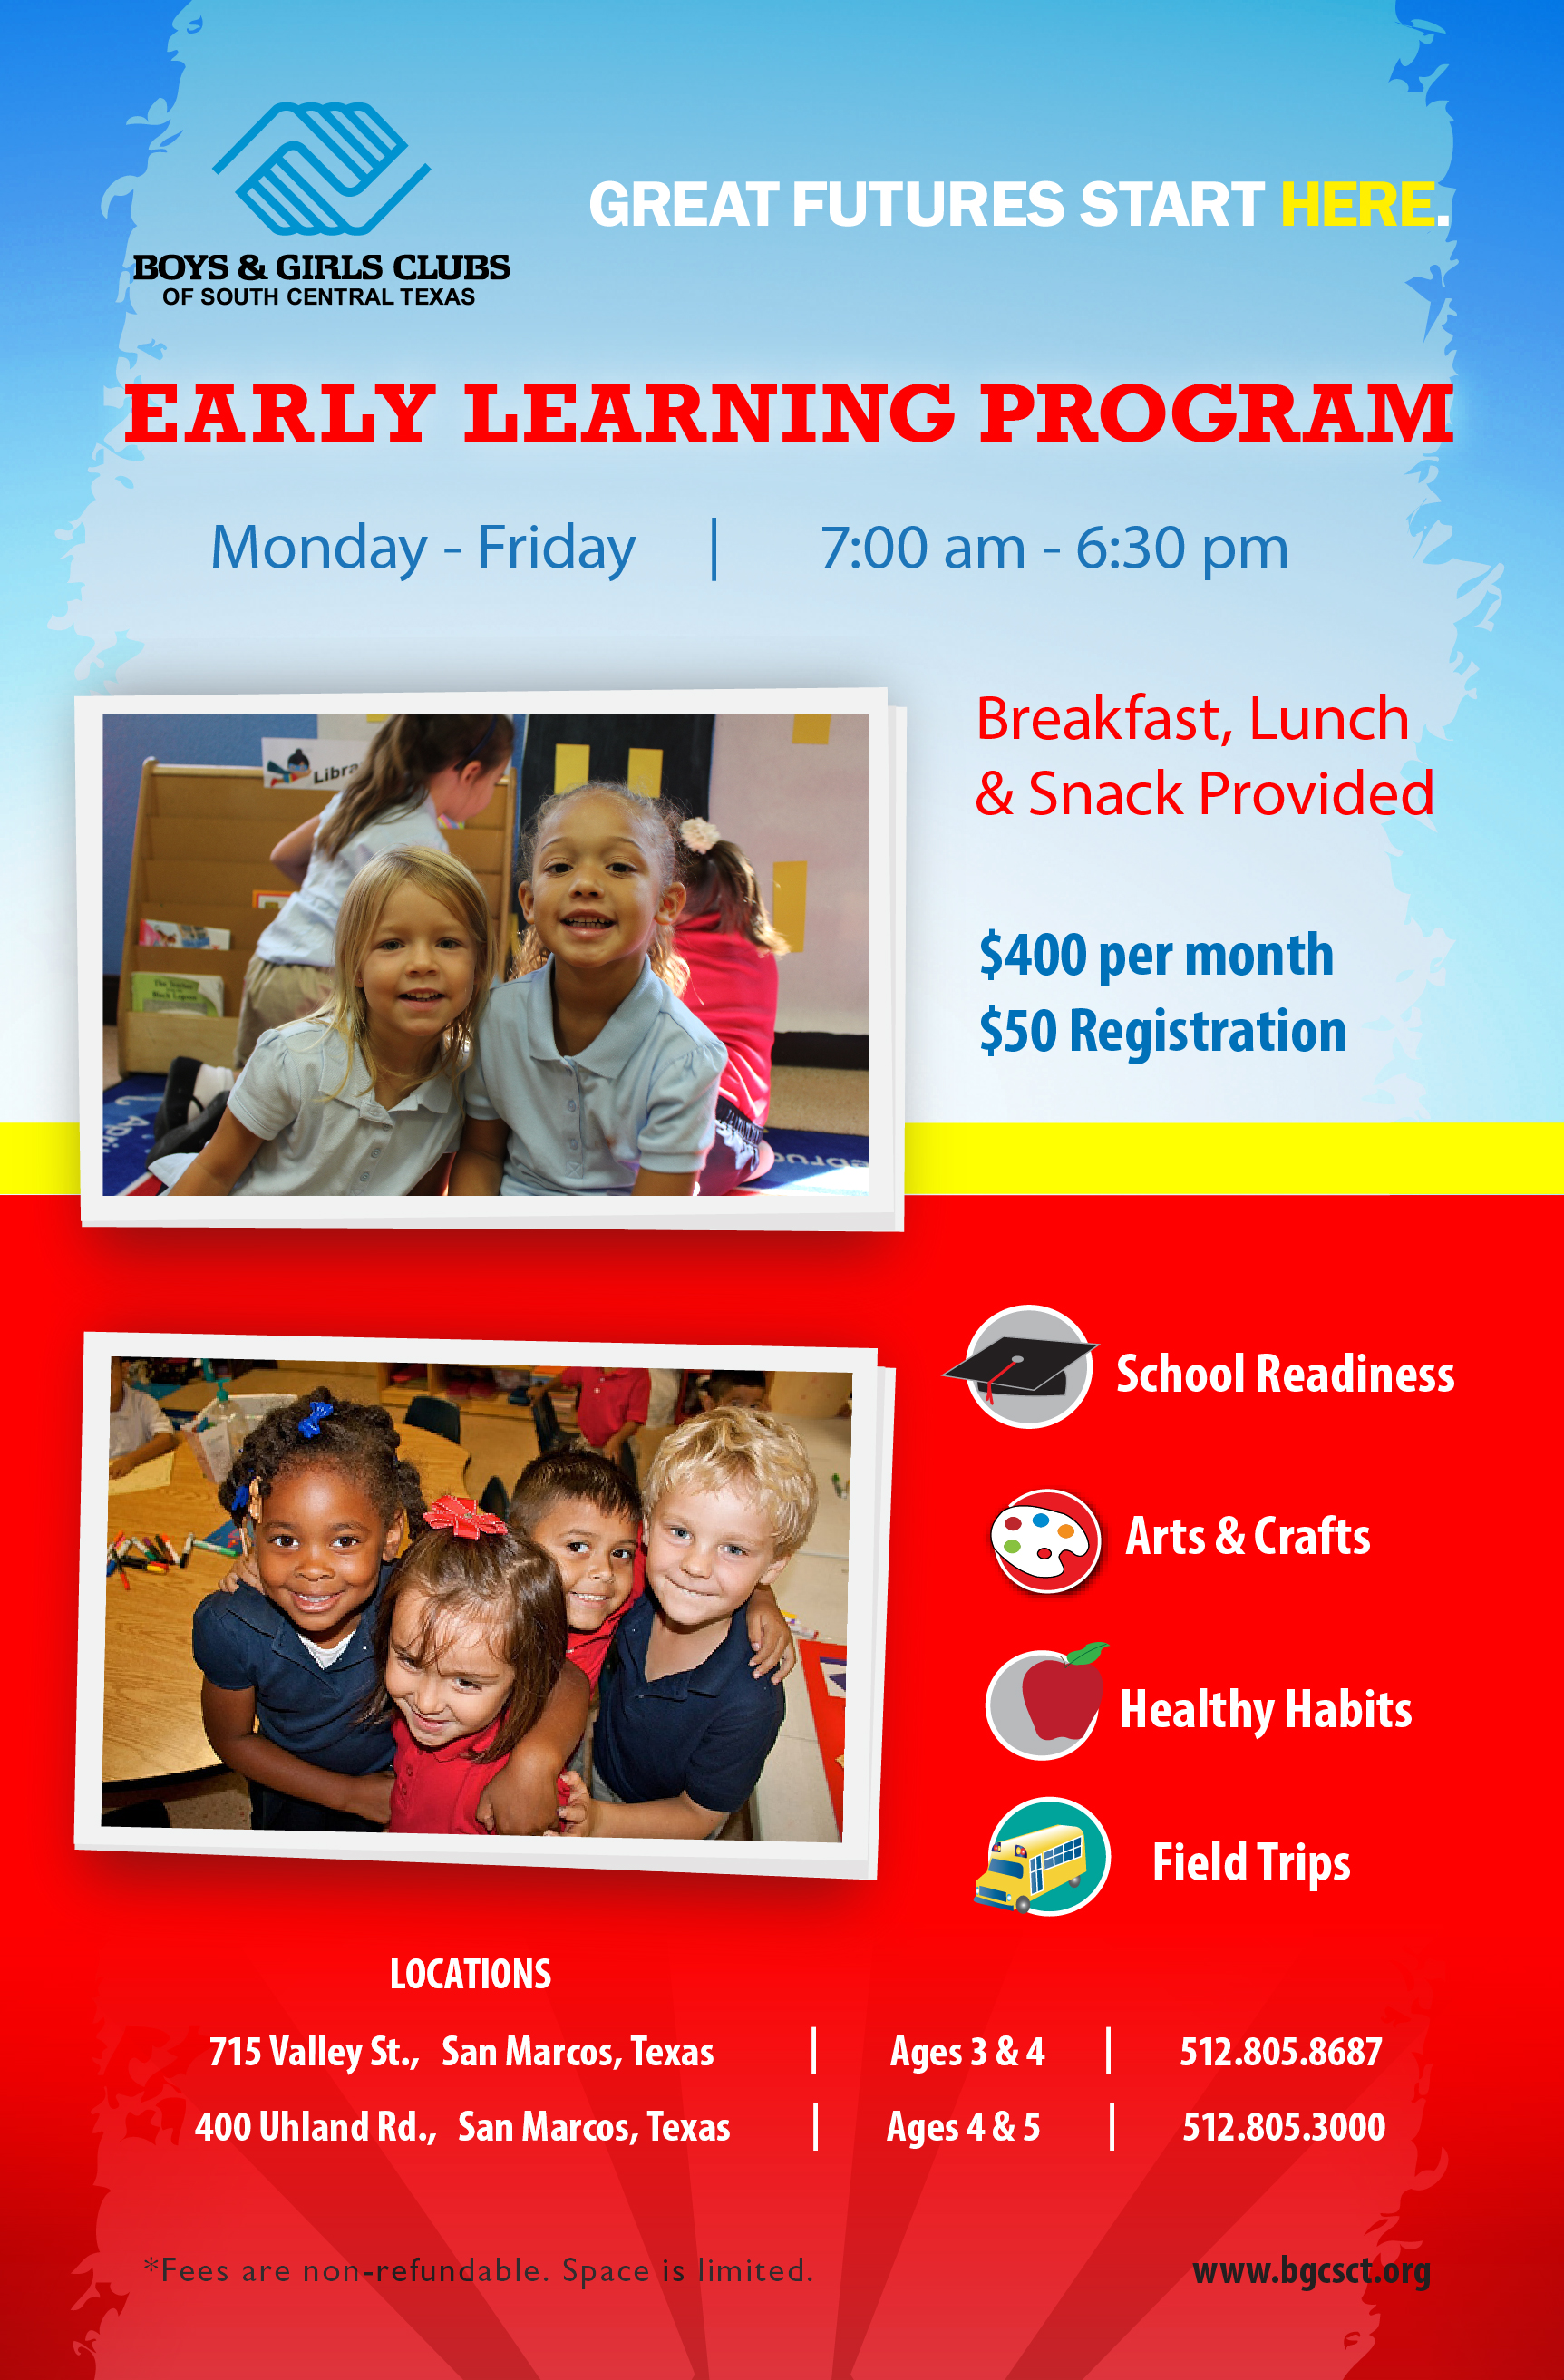 Boys and girls clubs of south central texas early learning program flyer